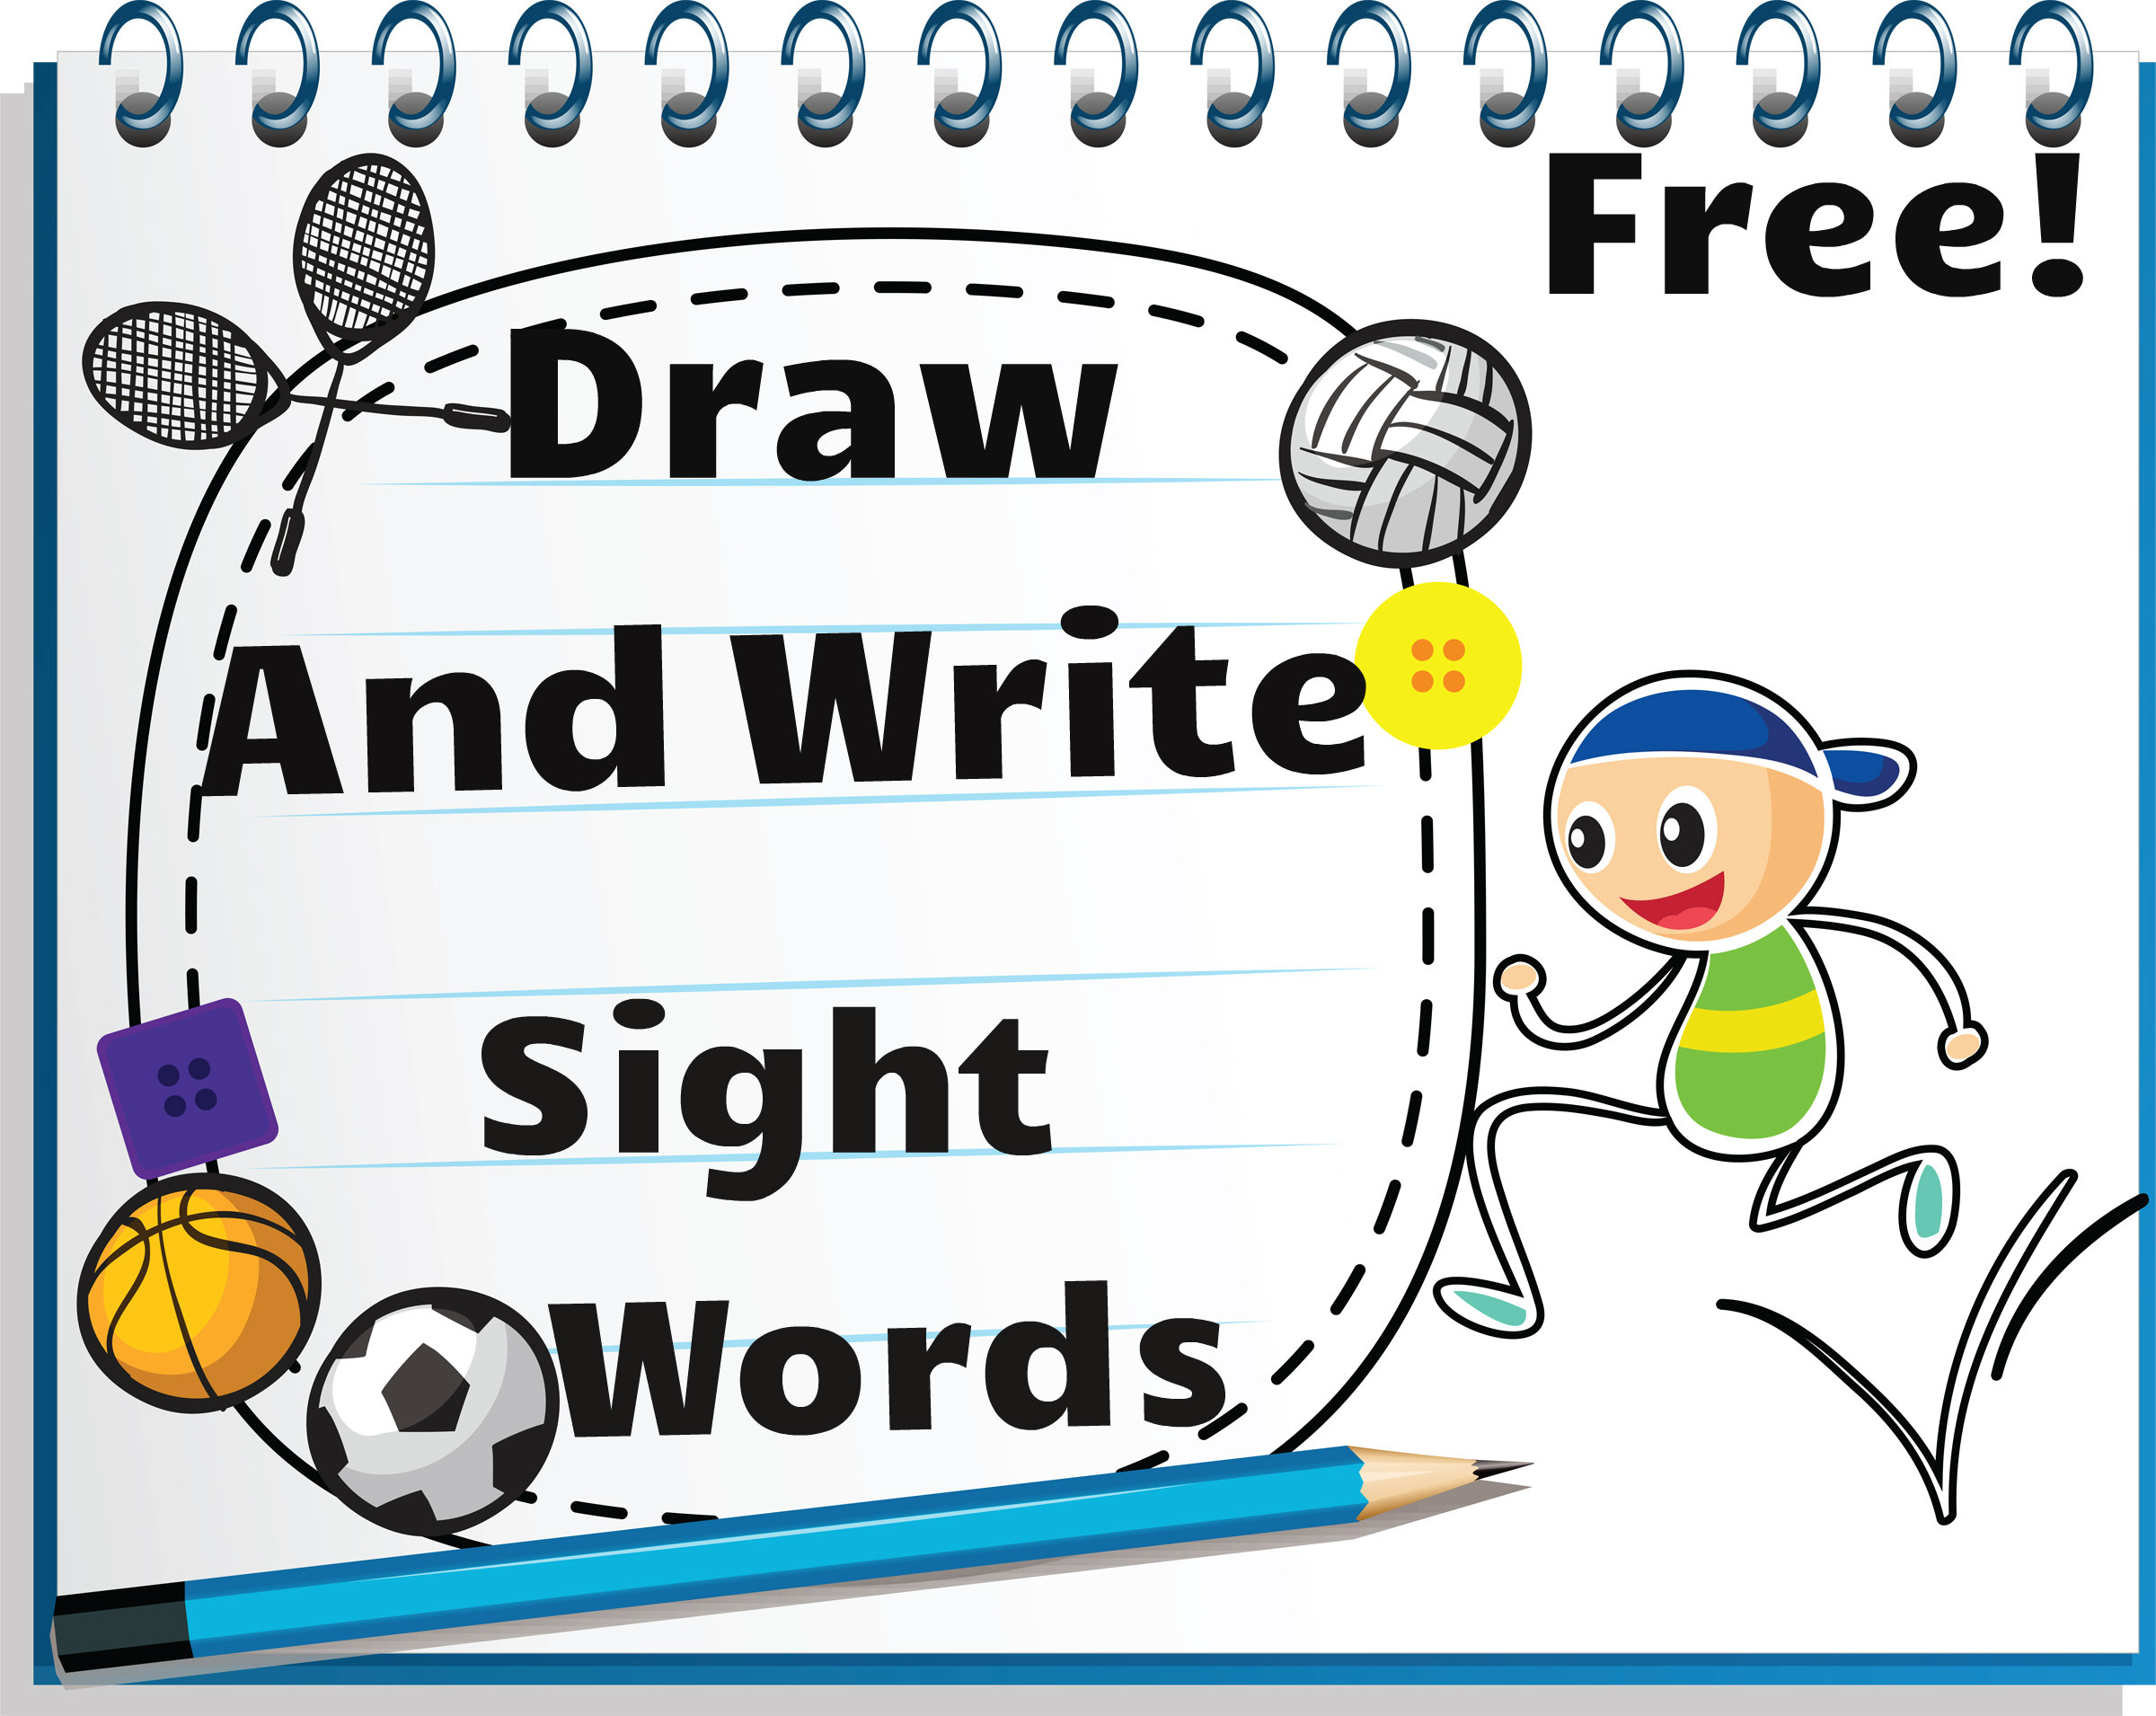 Draw and write sight words